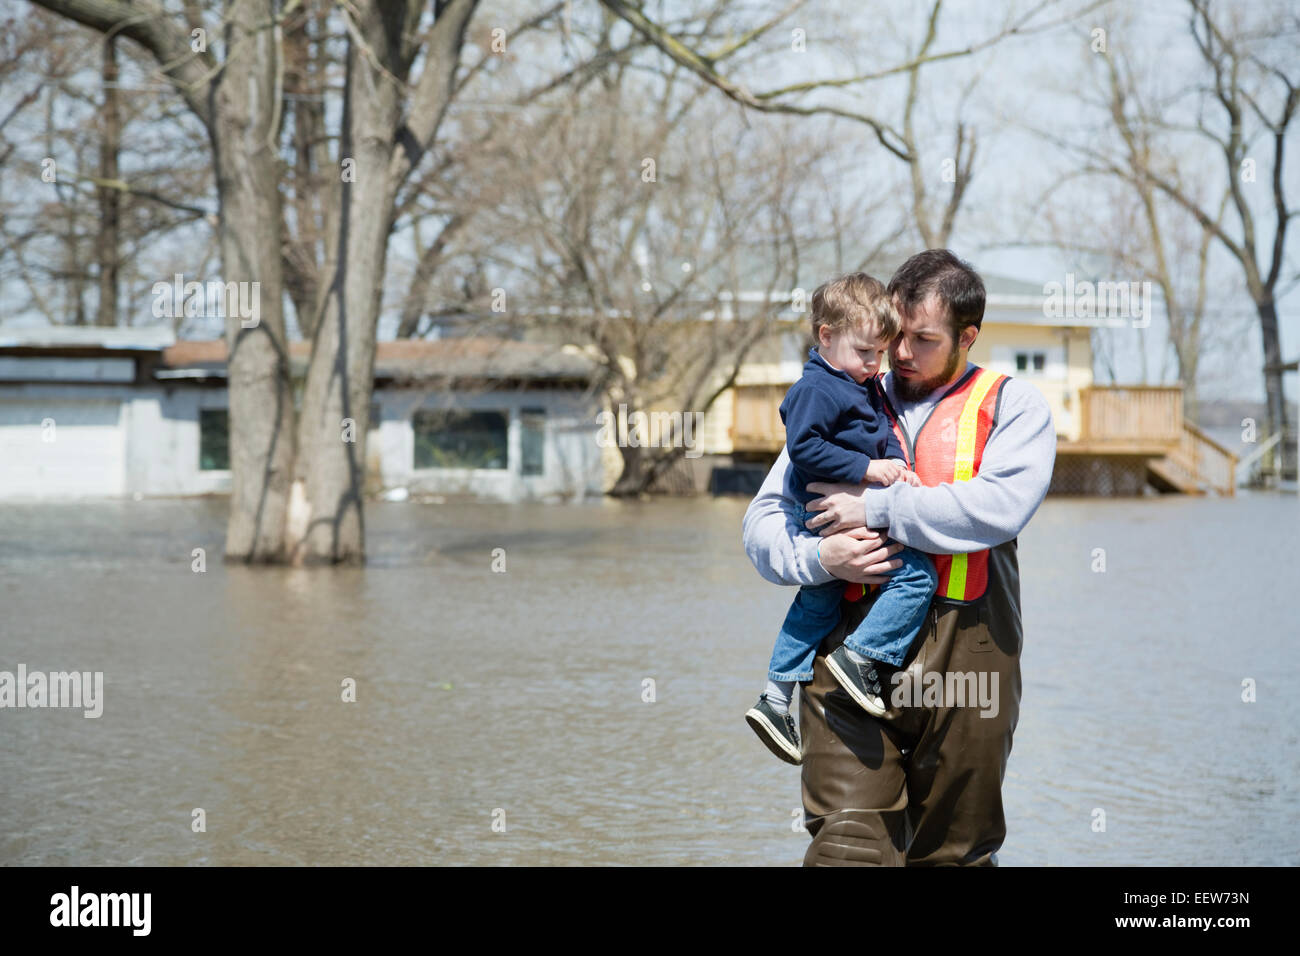 Man with son wading in floodwaters Stock Photo